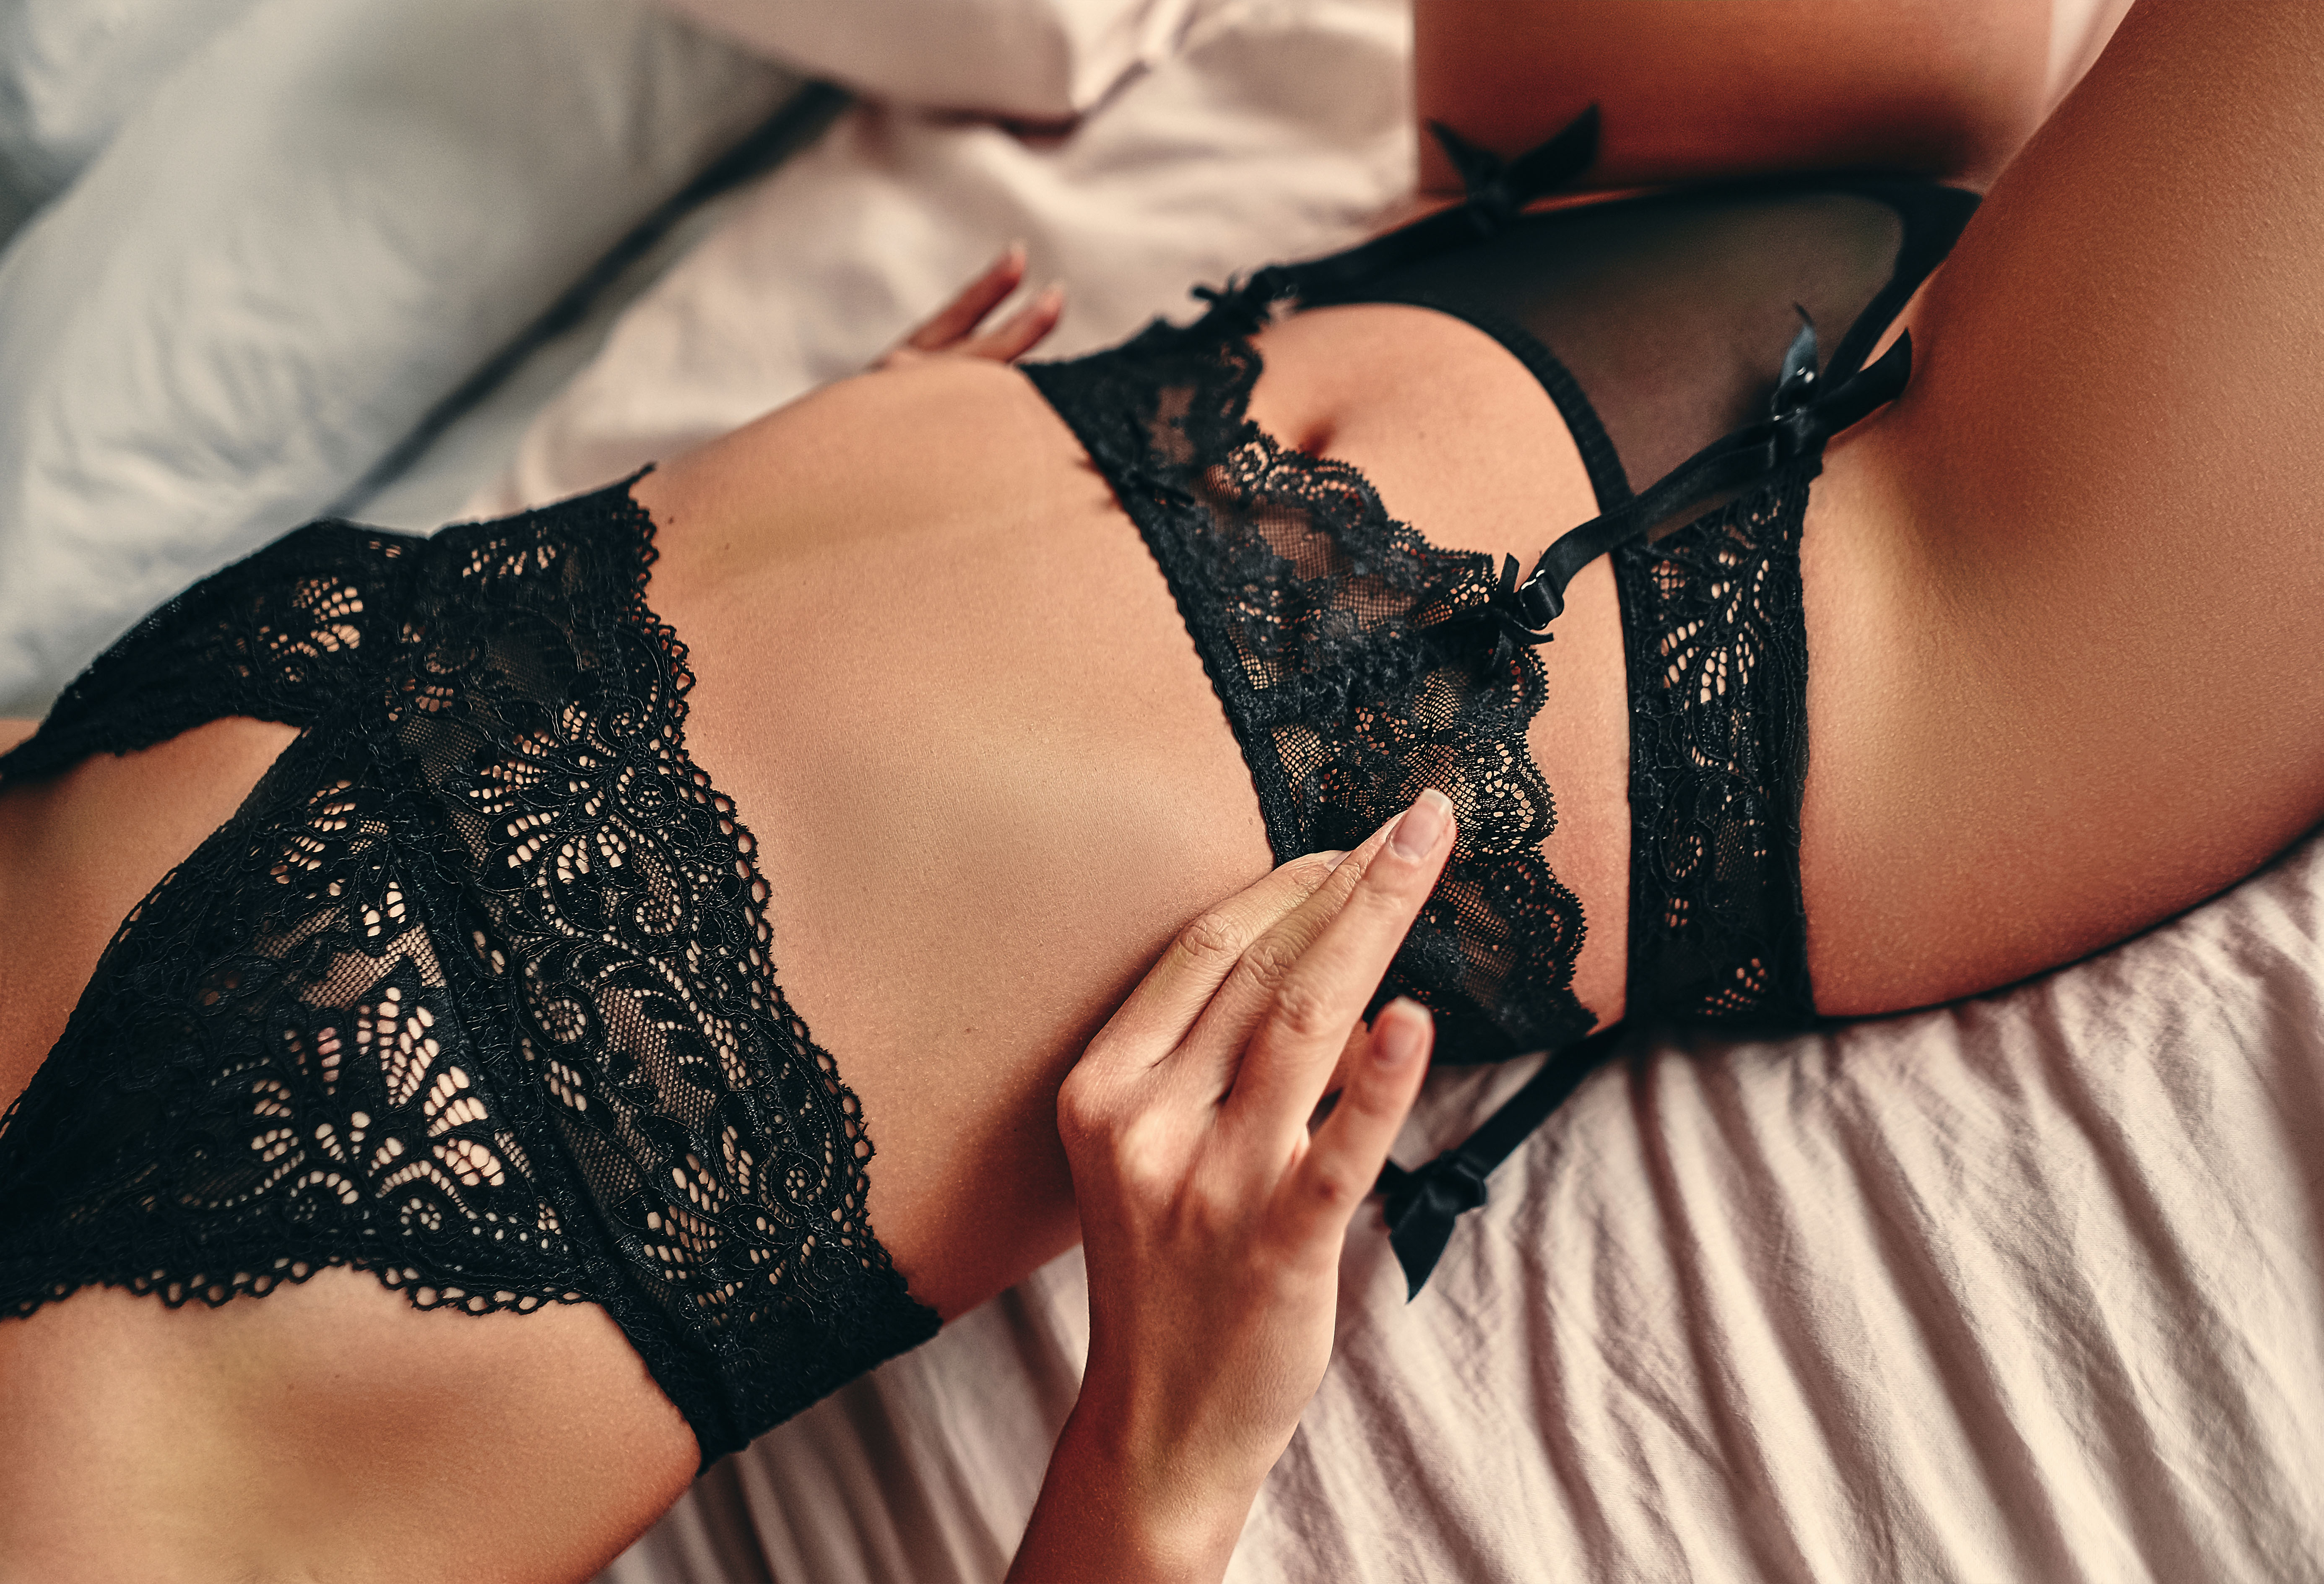 Lingerie & Outfits - Beginners Guide